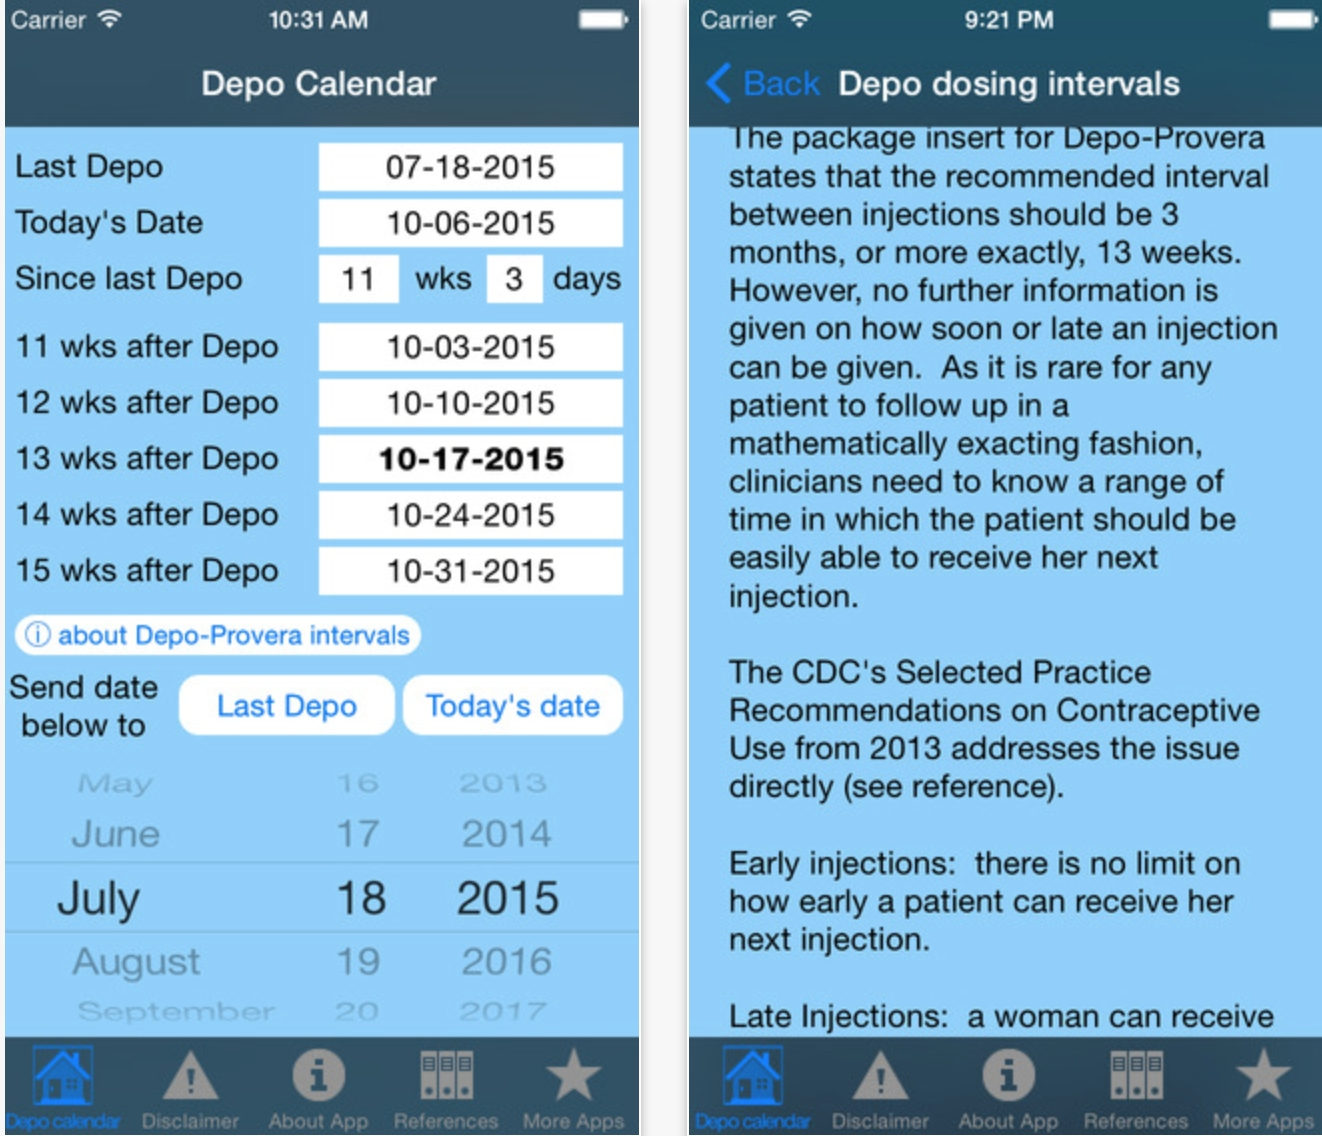 Depo Calendar App Could Significantly Improve Contraception  Depo Provera Amphastar Calendar